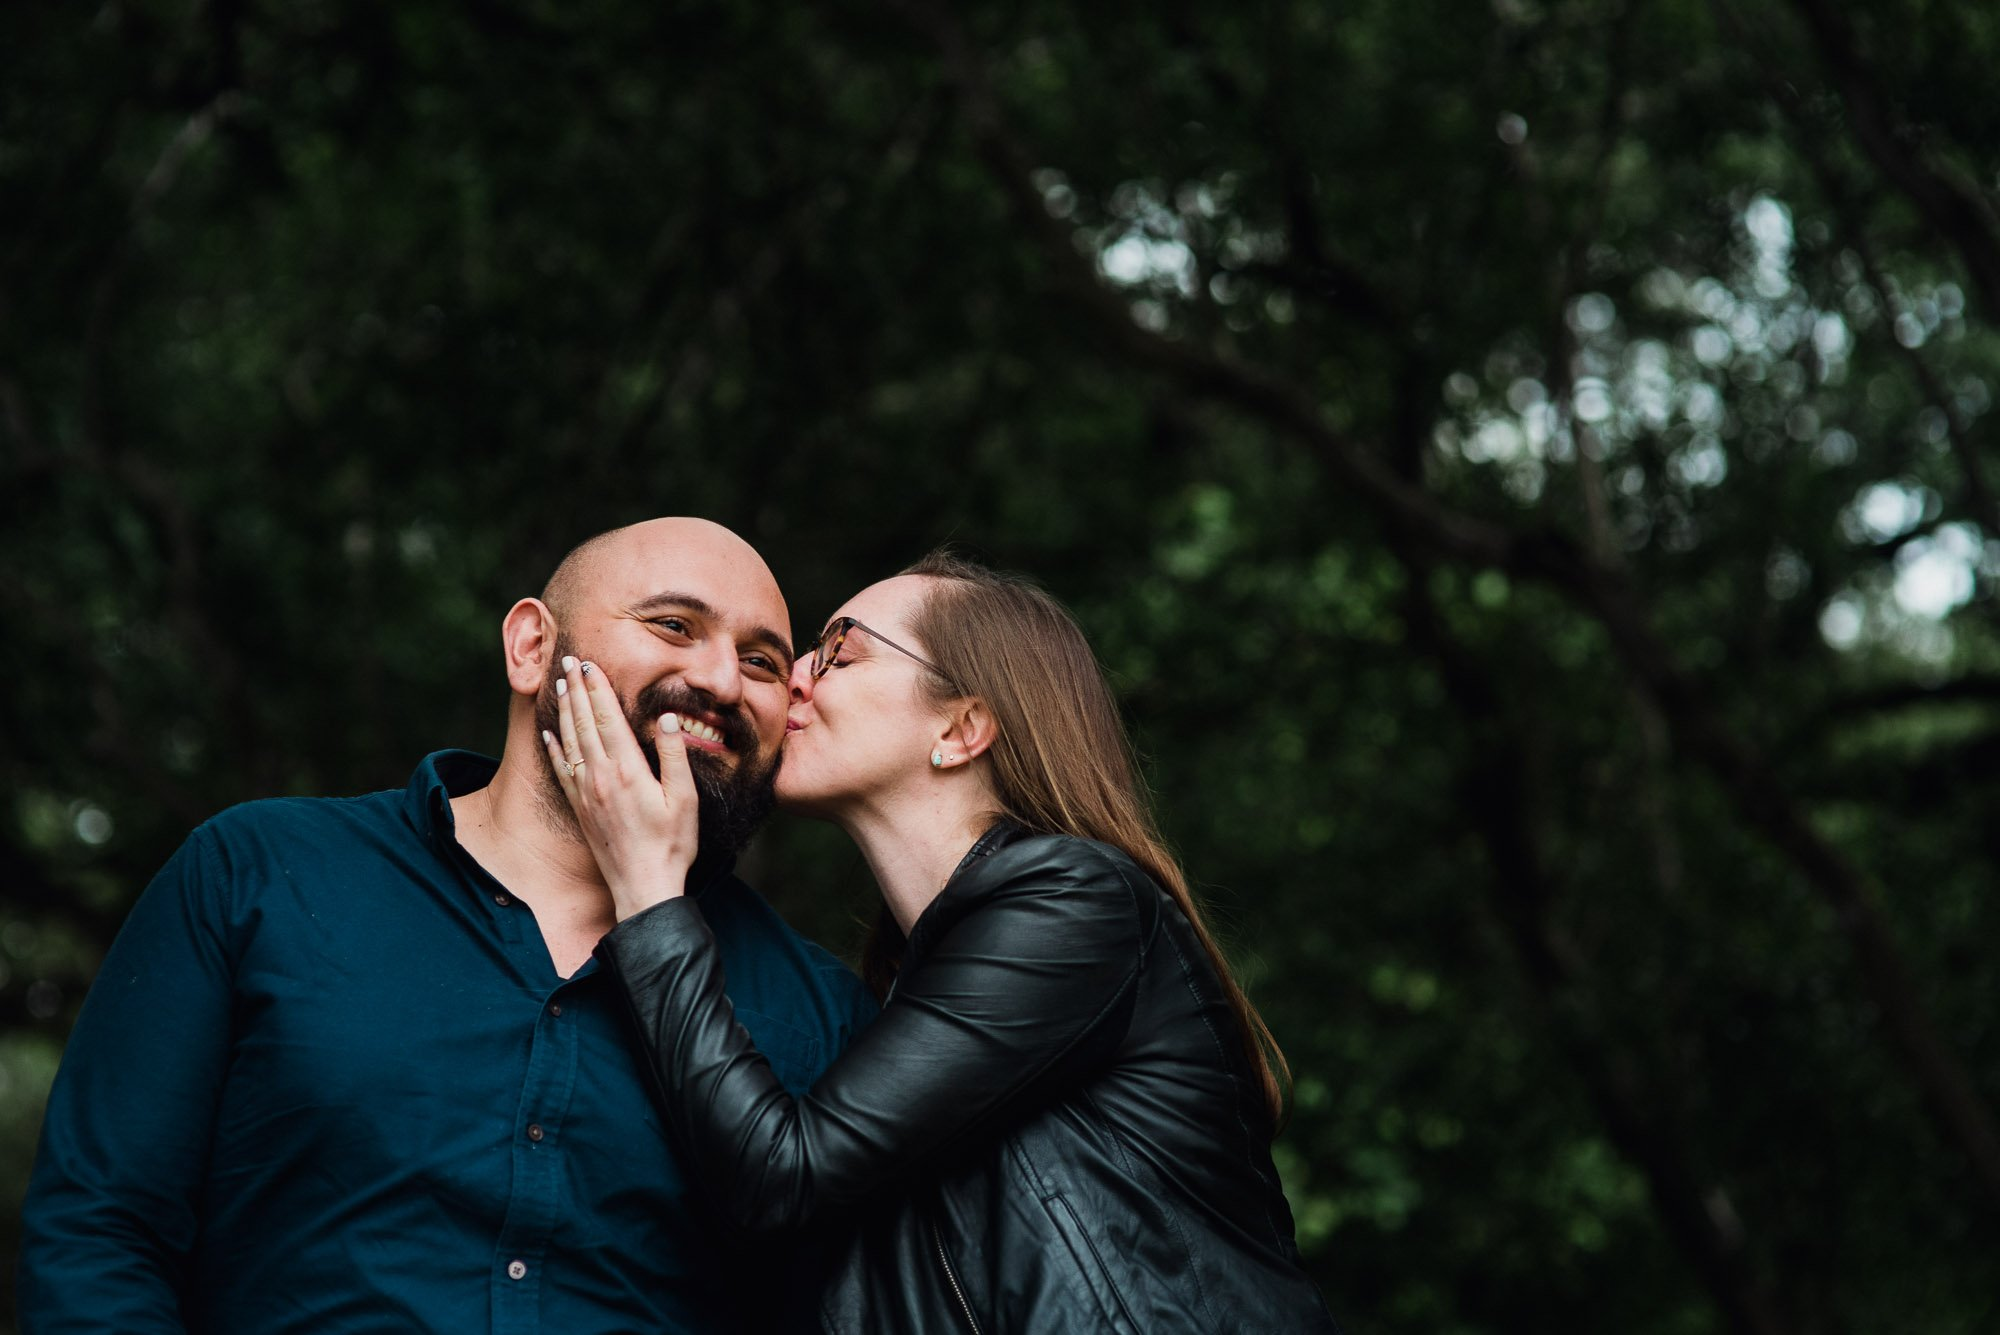 a kiss on the cheek for her fiance at the botanical gardens during an engagement session, austin proposal photographer, portland engagement session, pdx photographer, portland engagement photographer